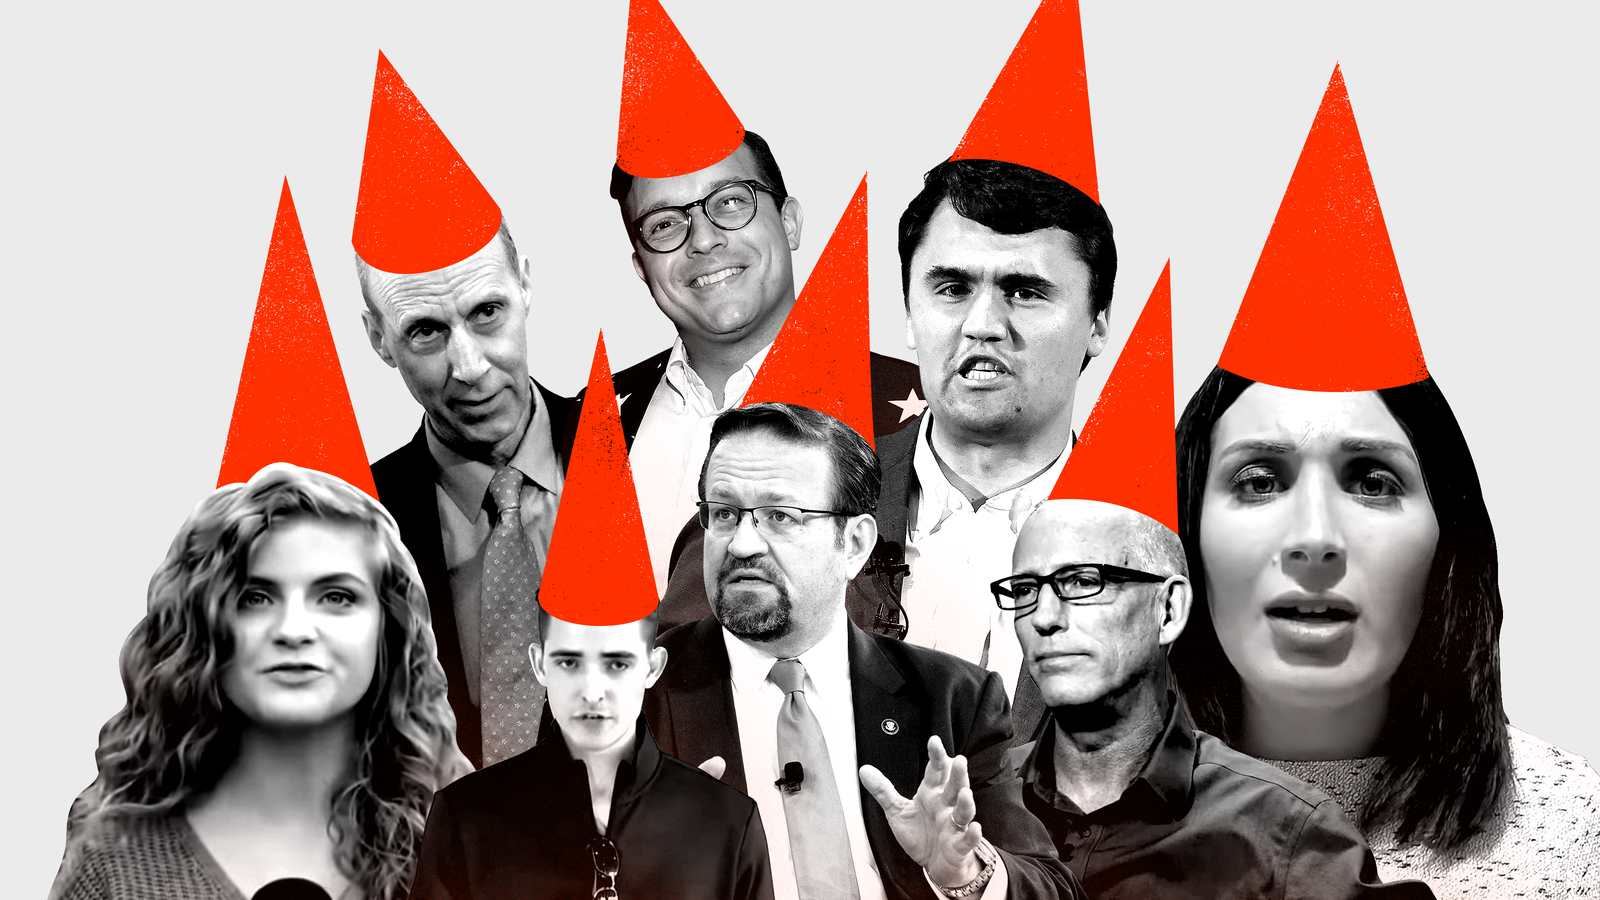 The 69 Idiots of 2018: Online Fever Swamp